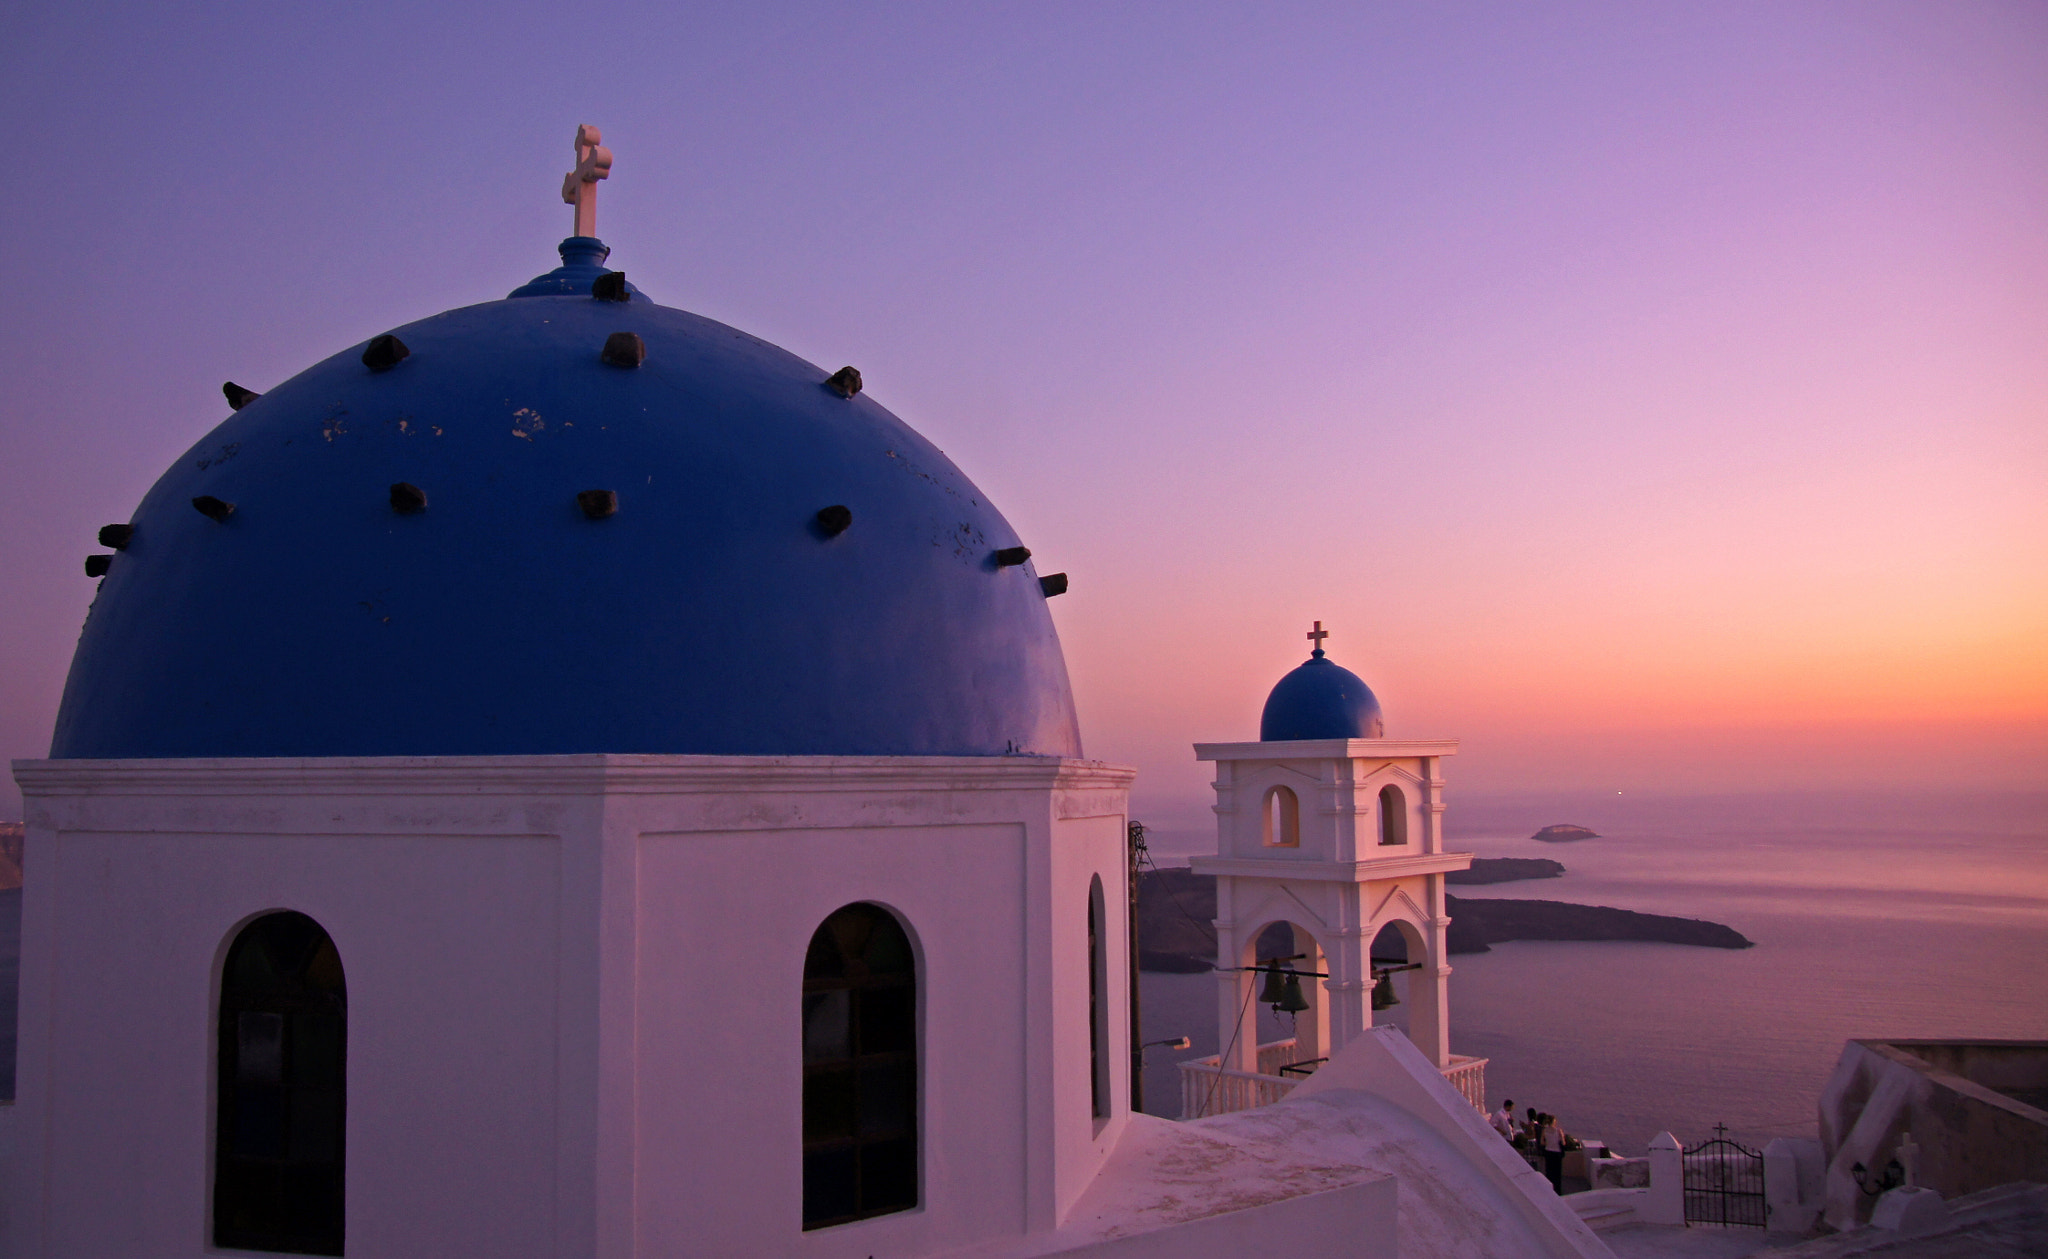 Photograph Church at Oia - Santorini Island - Greece by Lluís Grau on 500px